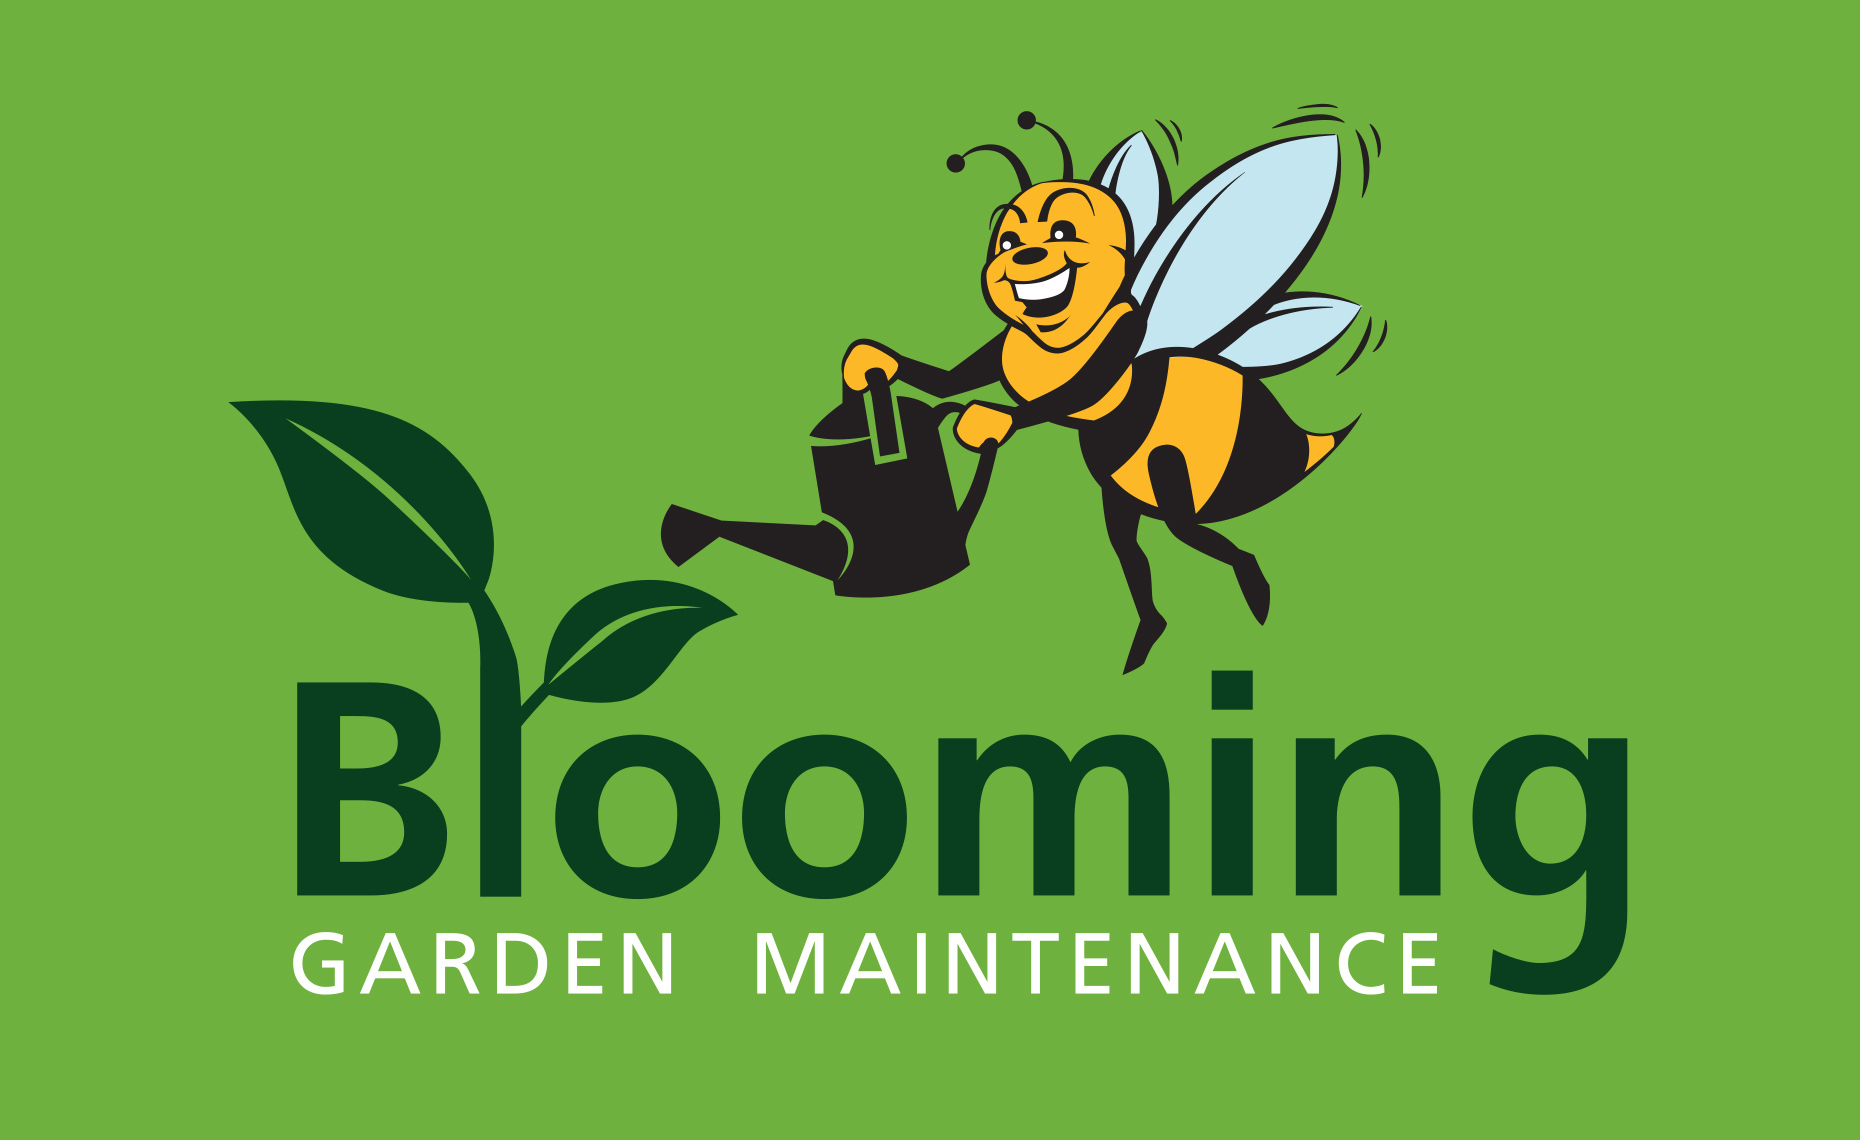 Blooming Garden Maintenance